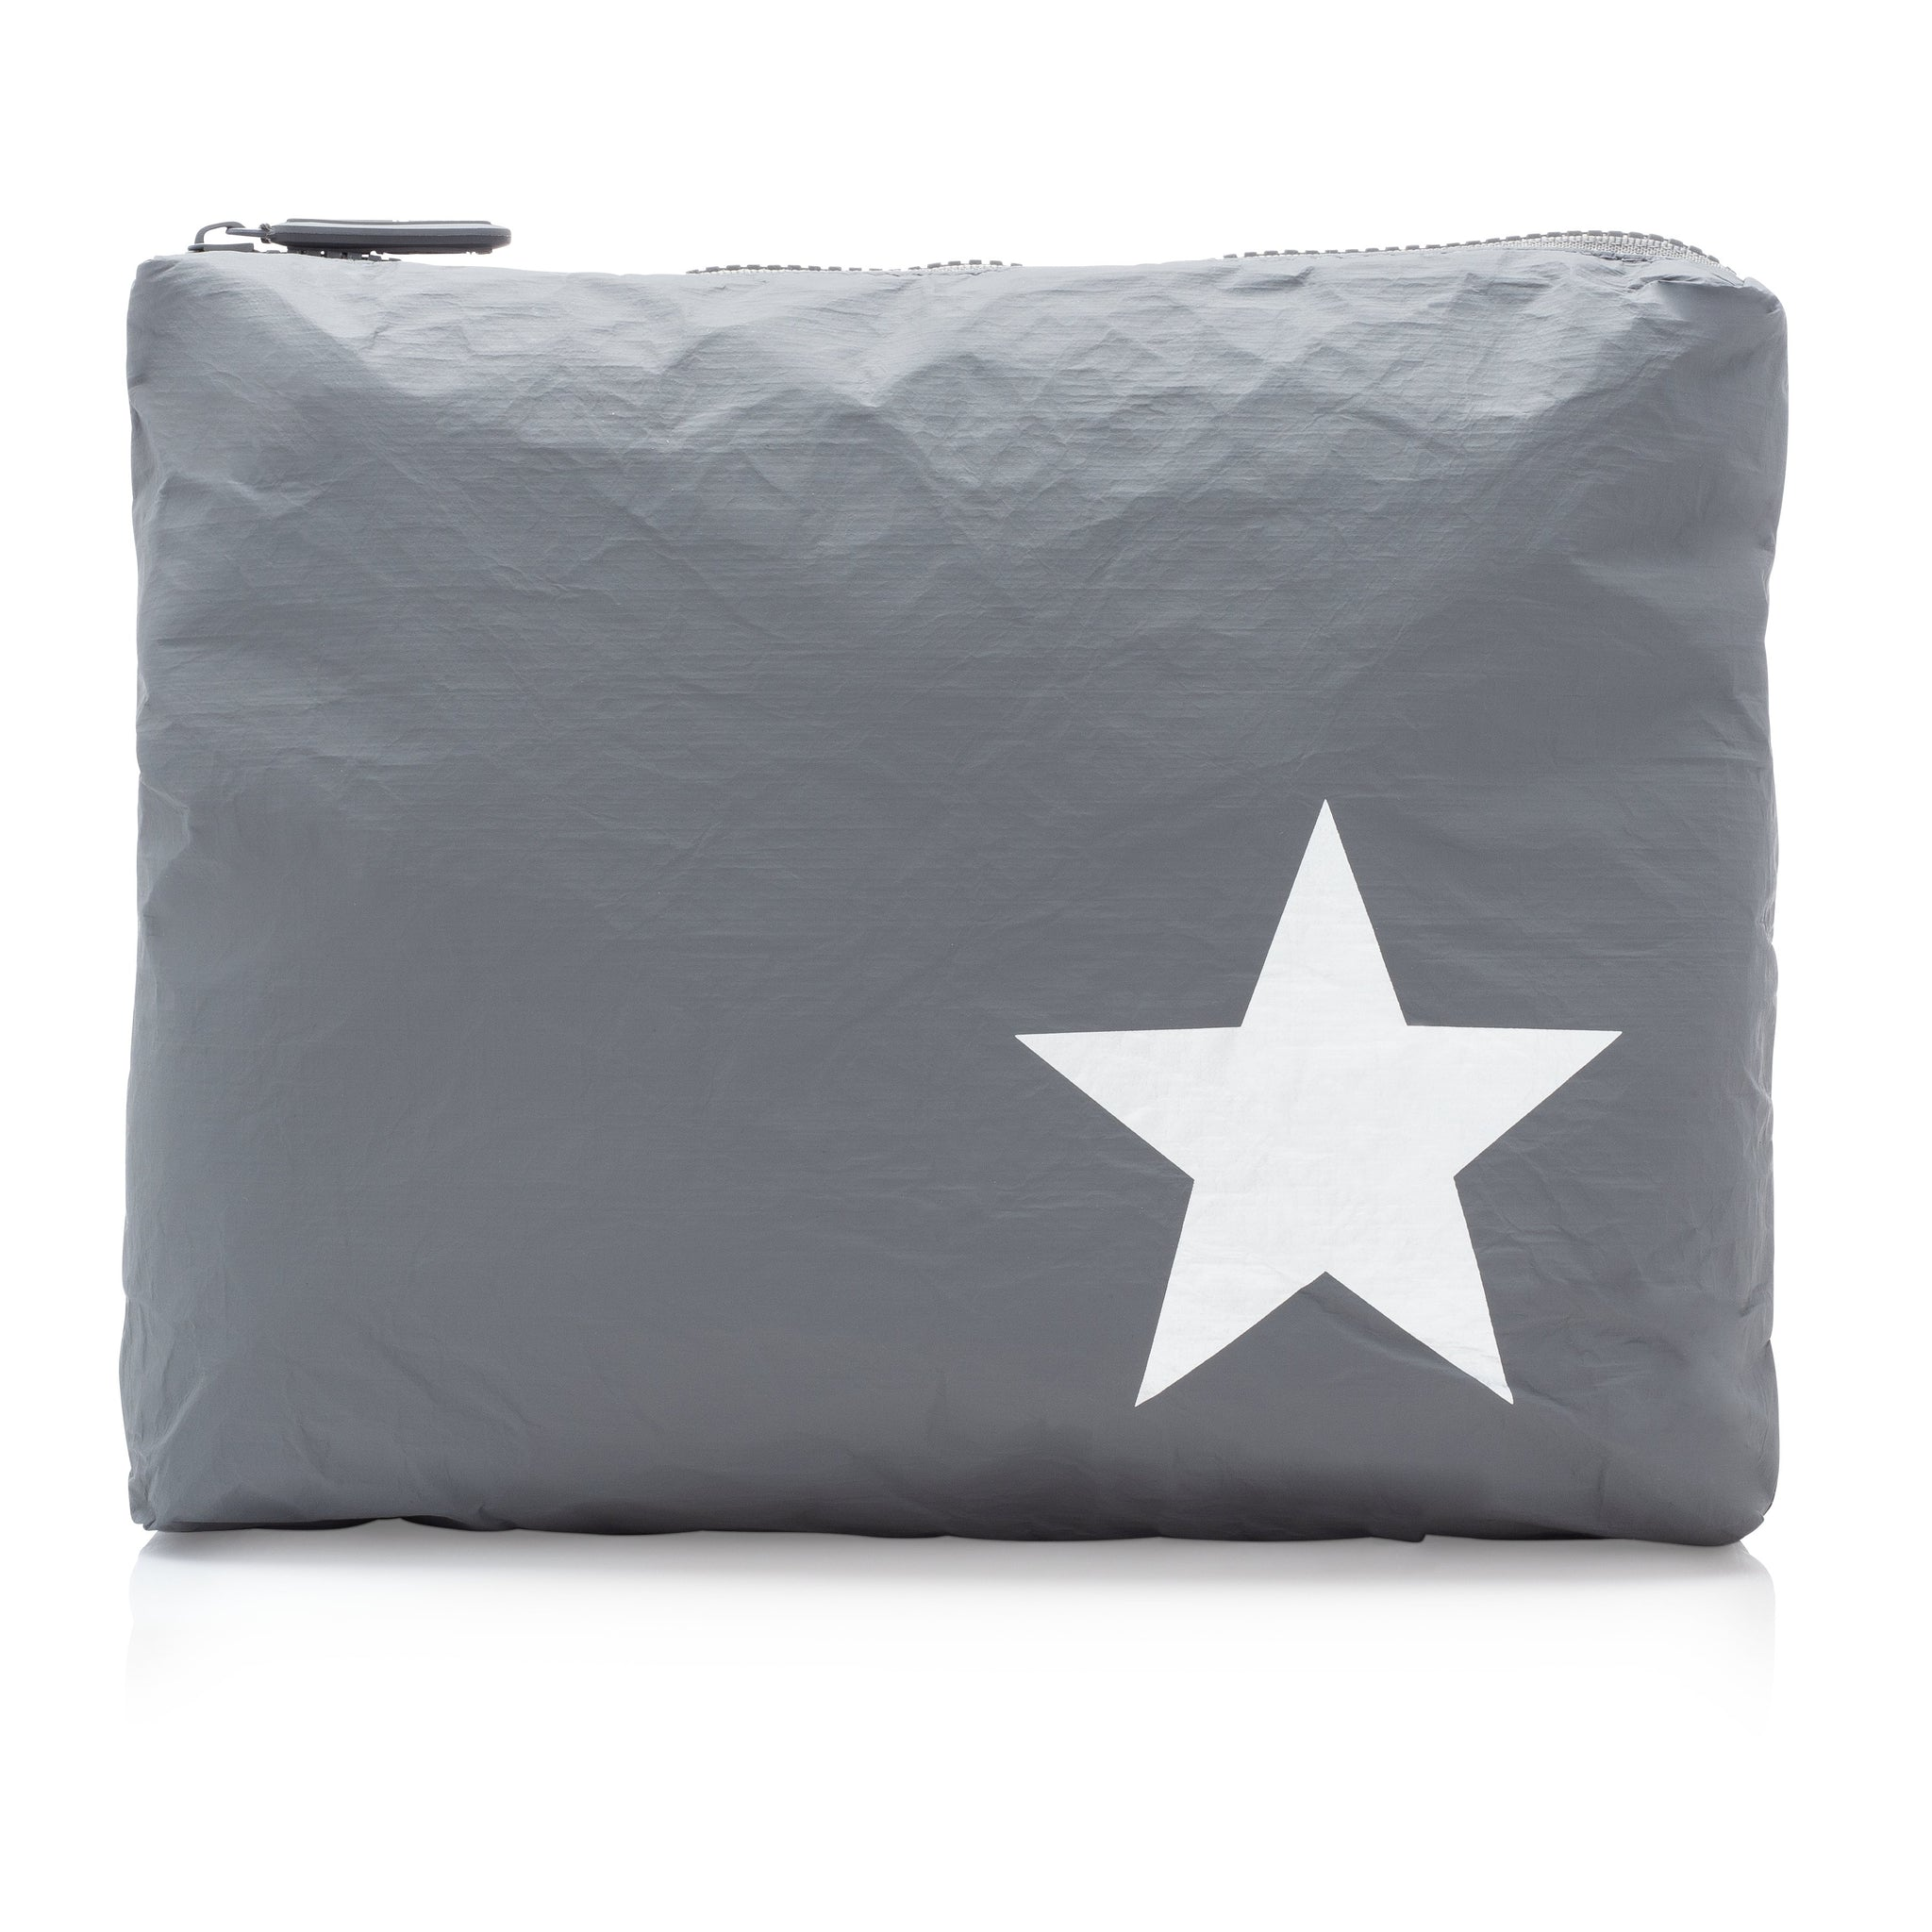 Travel Pack - Makeup Pouch - Medium Pack - Cool Gray with Metallic Silver Star